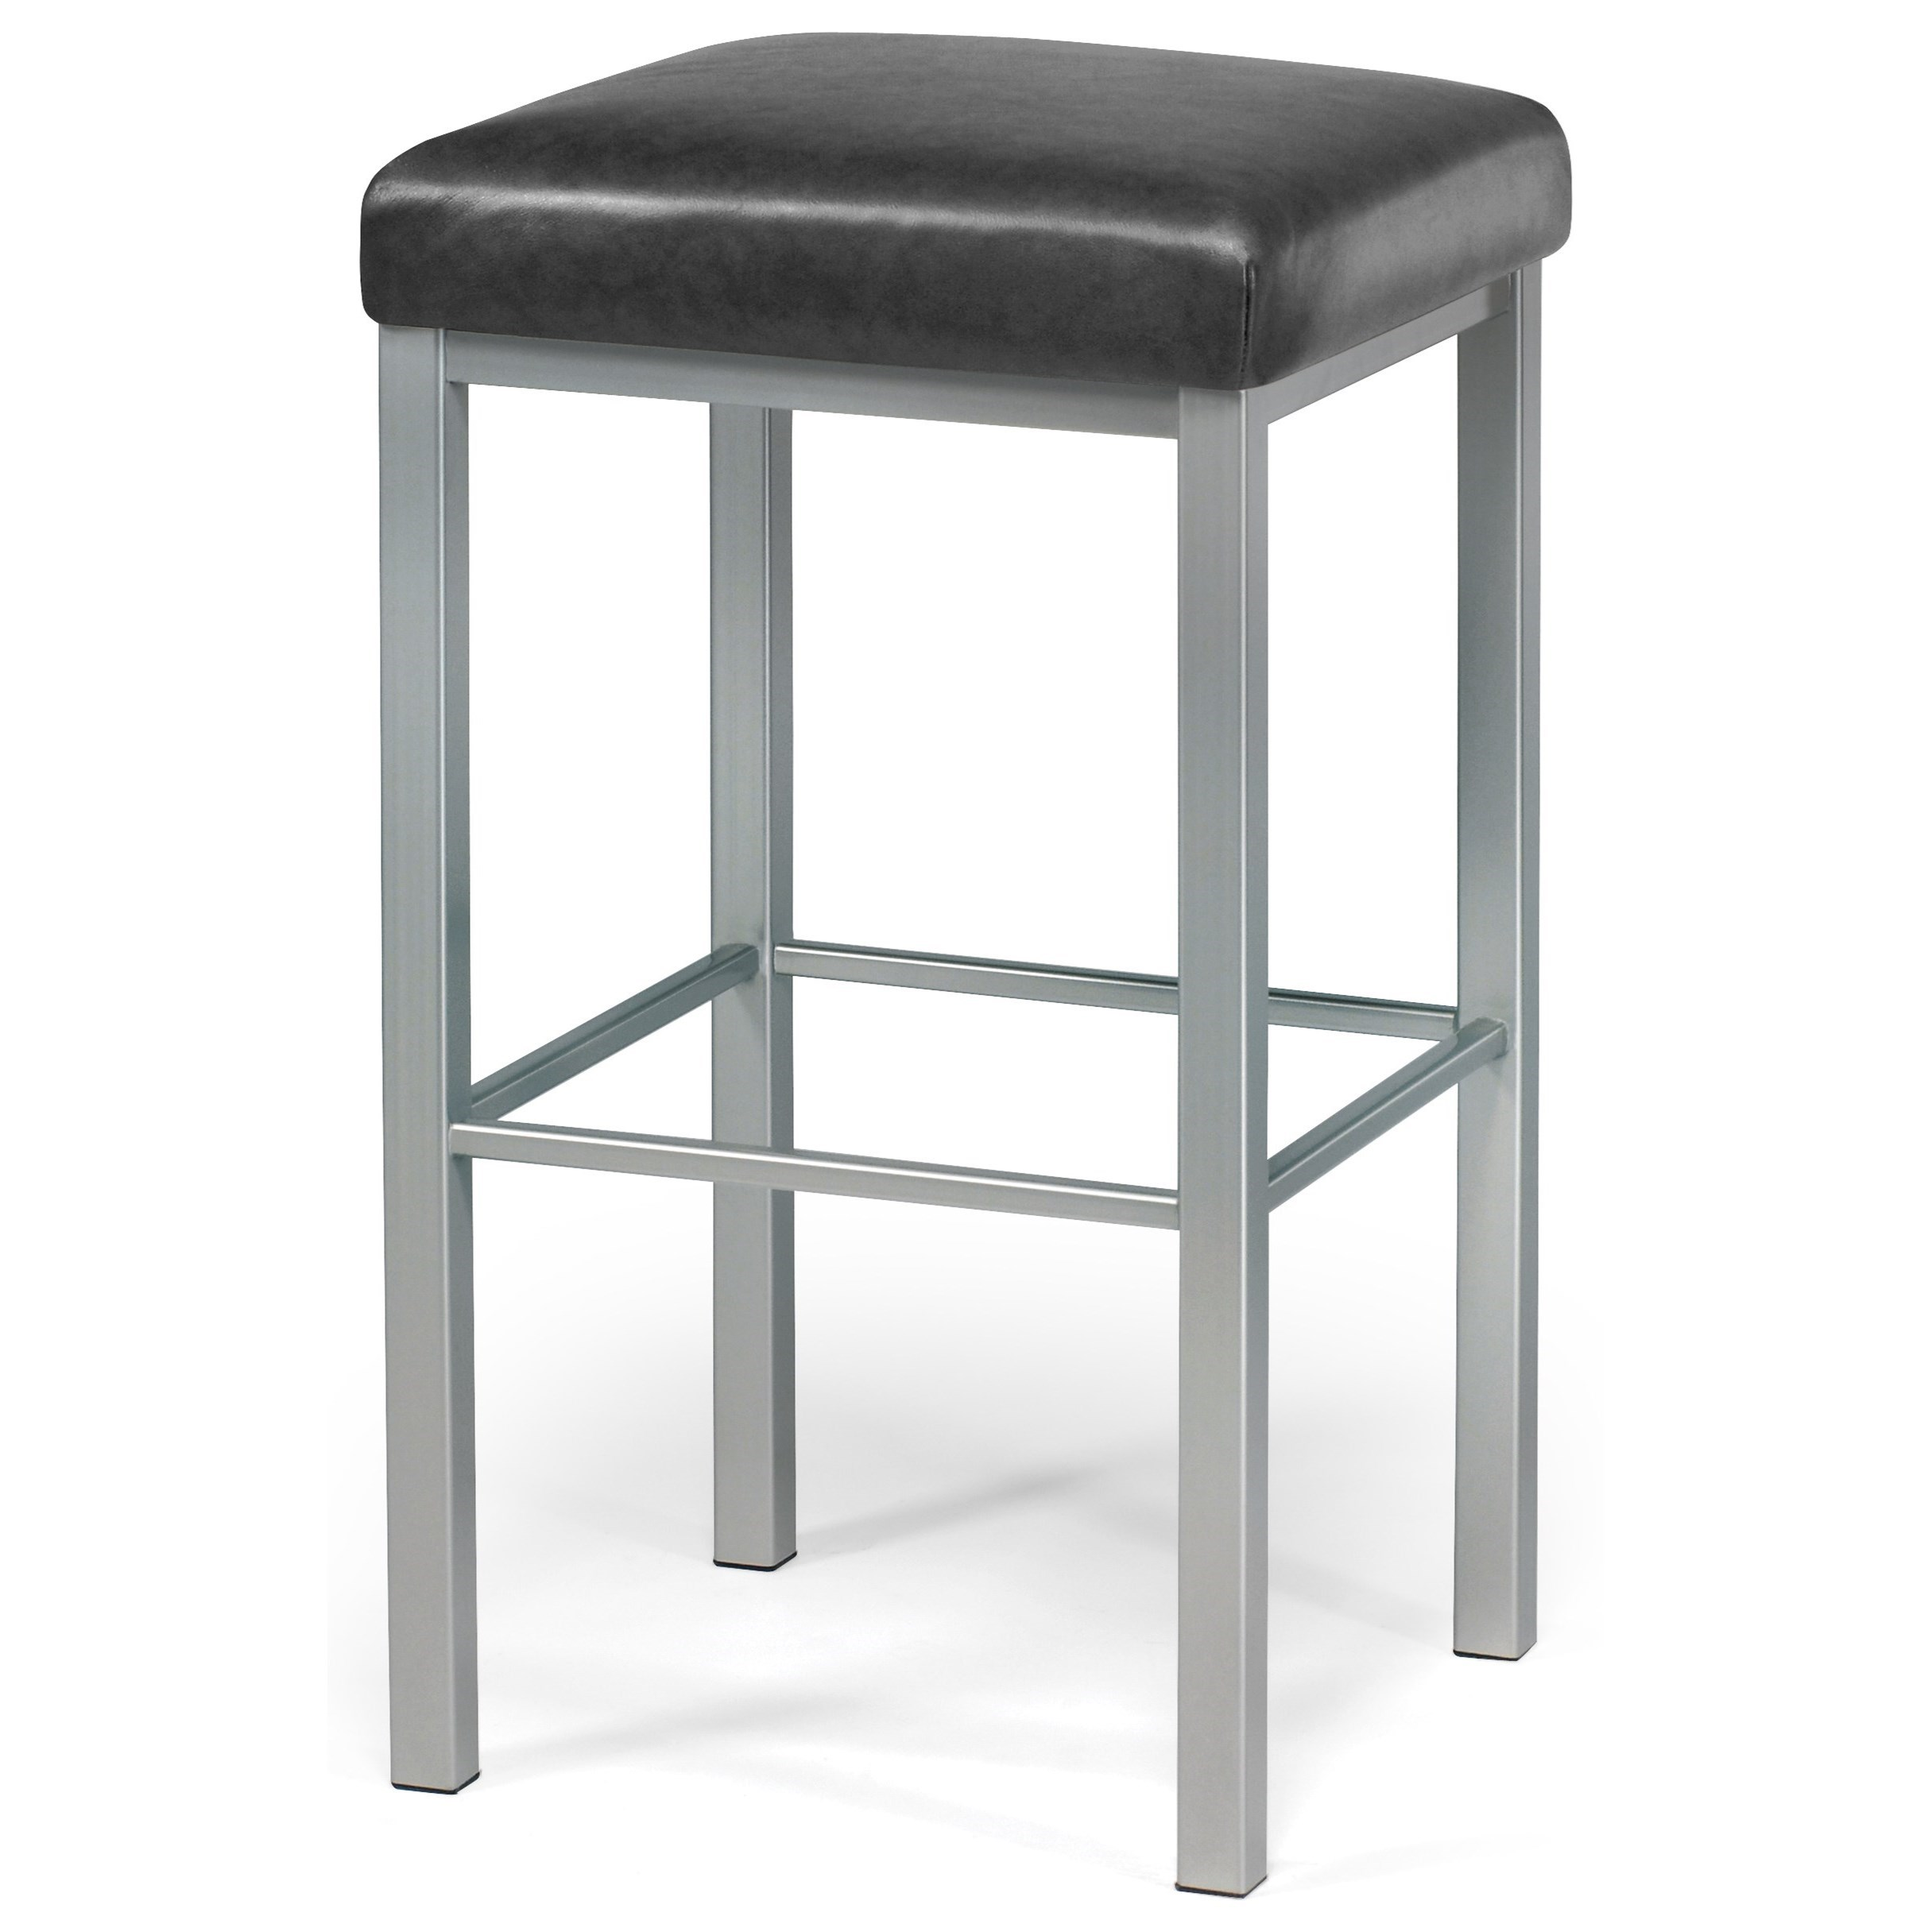 Contemporary Seating Day Bar Stool by Trica at Dinette Depot